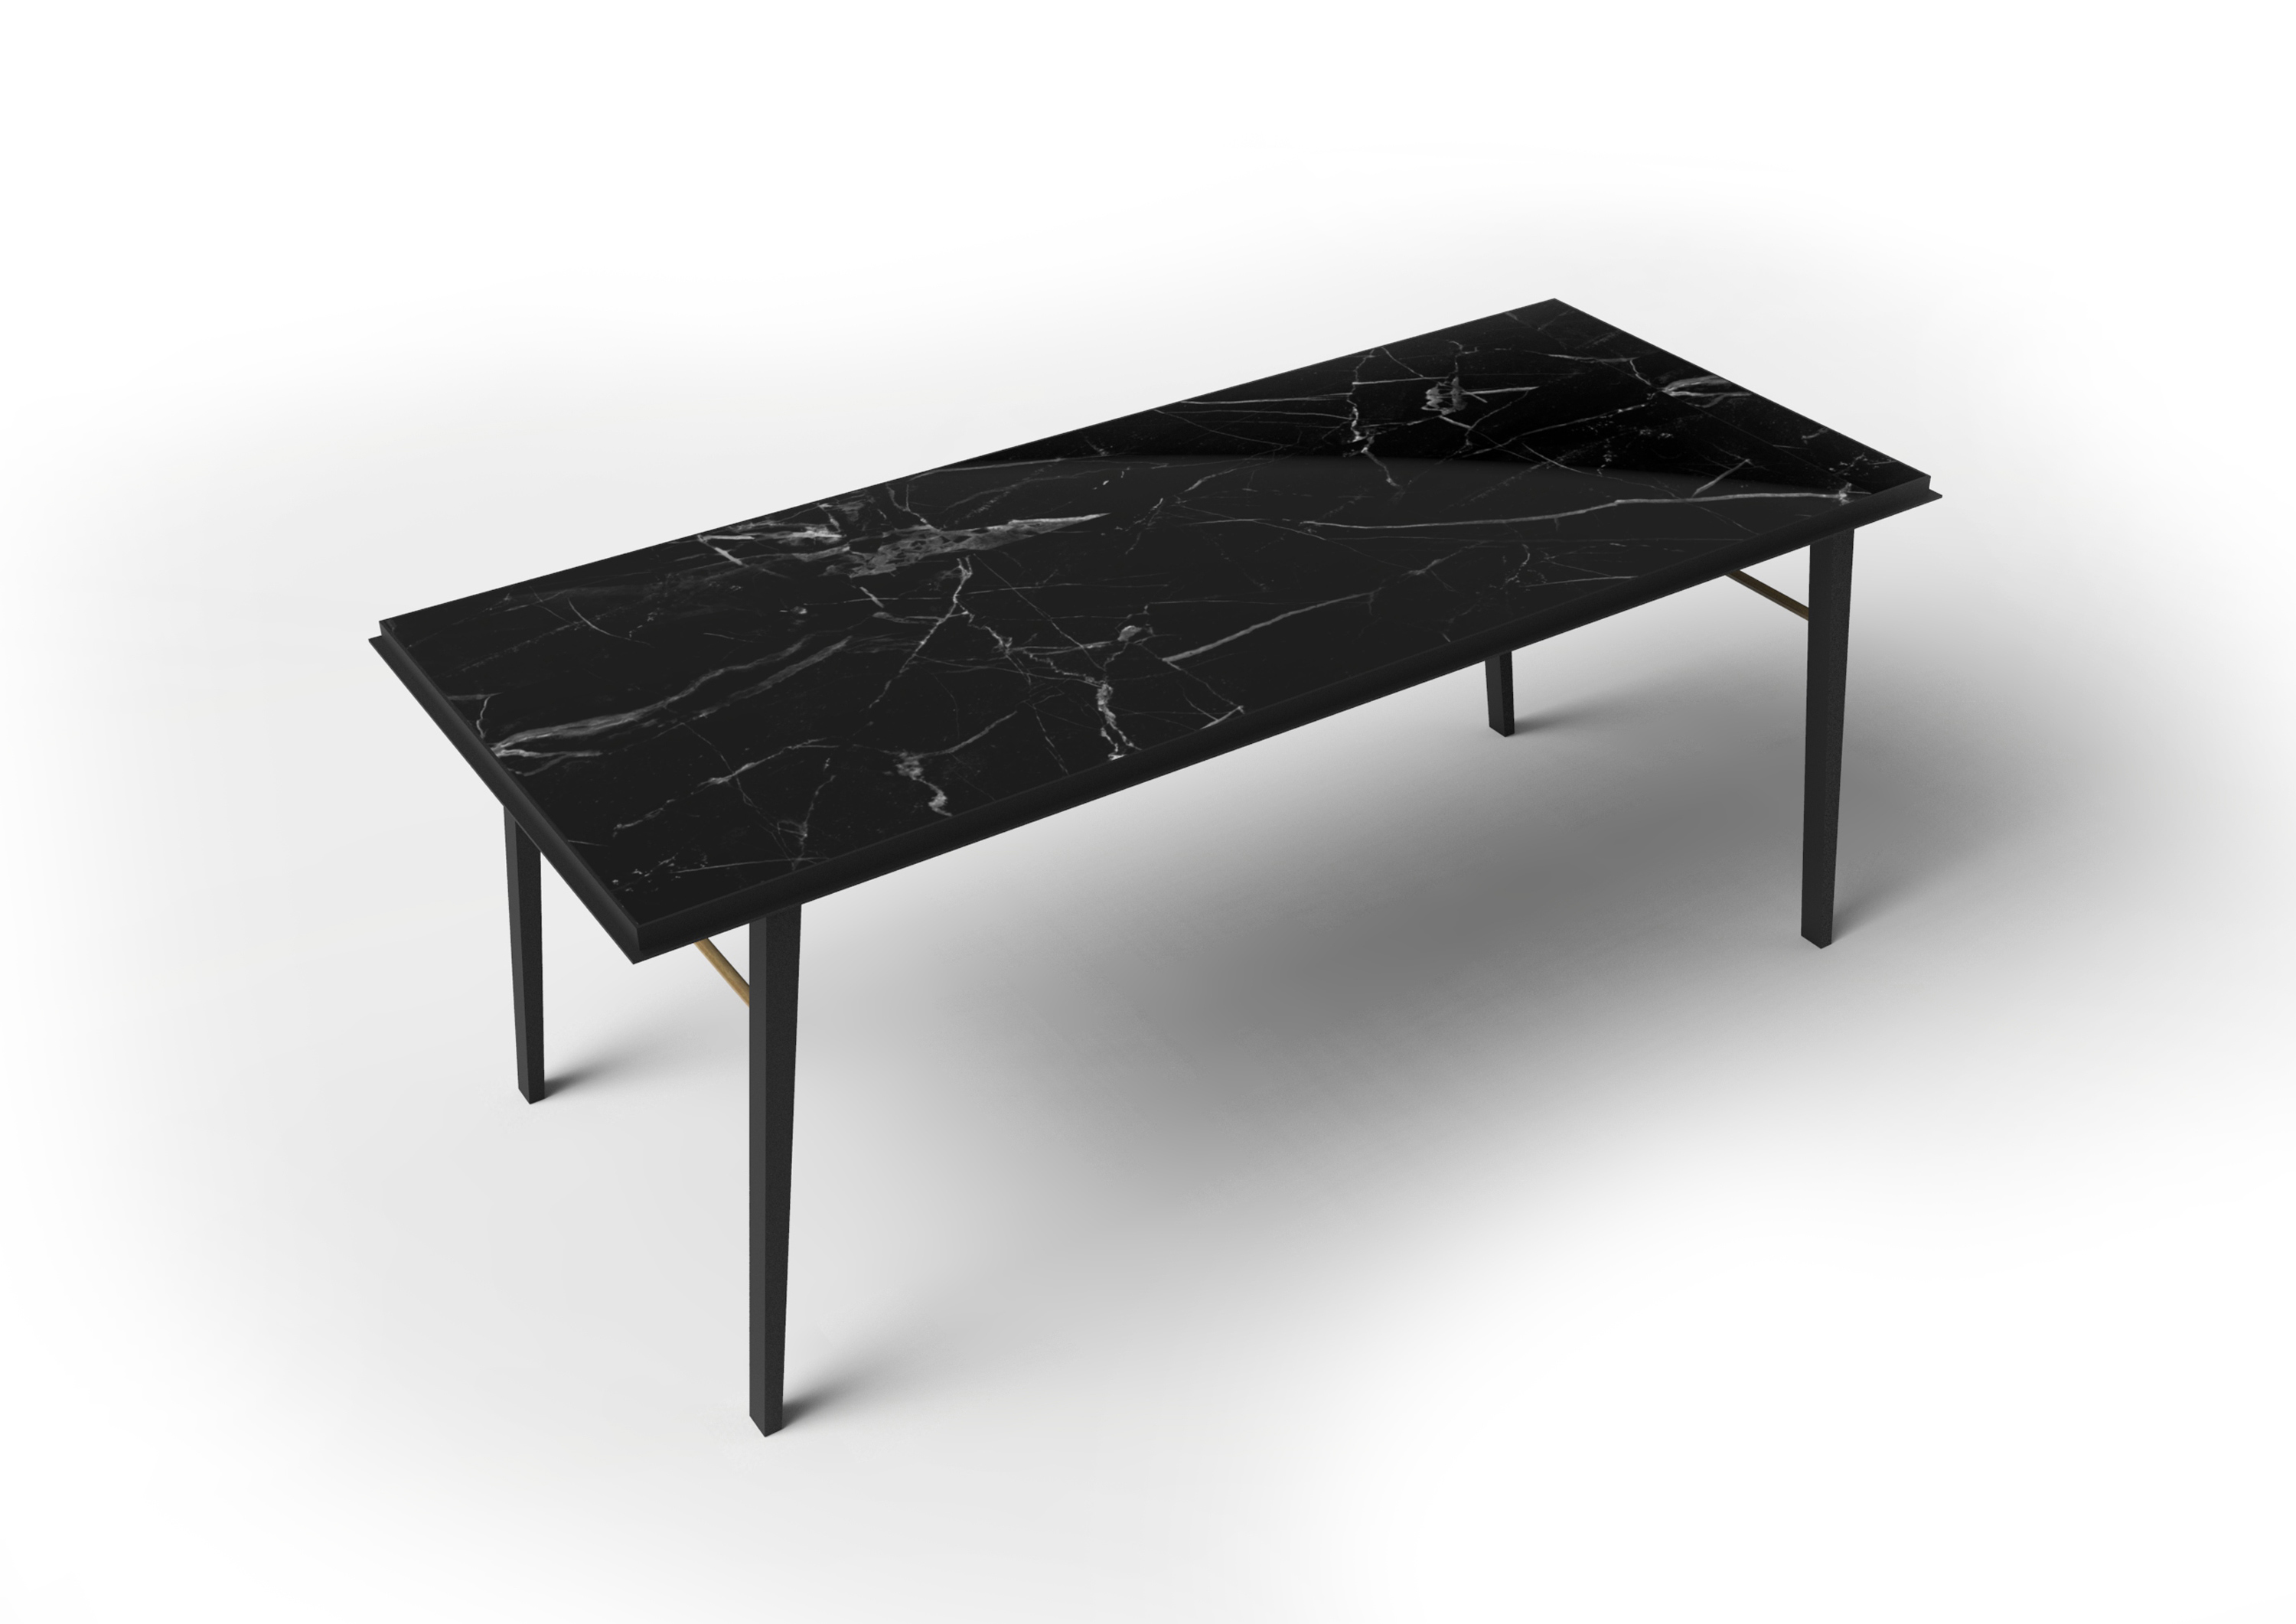 Aes Desk - <p>This unique desk consists of a metal collar with nero marquina marble top. The frame is made from black powder-coated steel. Brass elements emphasise the elegance and exclusivity of the design.</p>  | Matter of Stuff